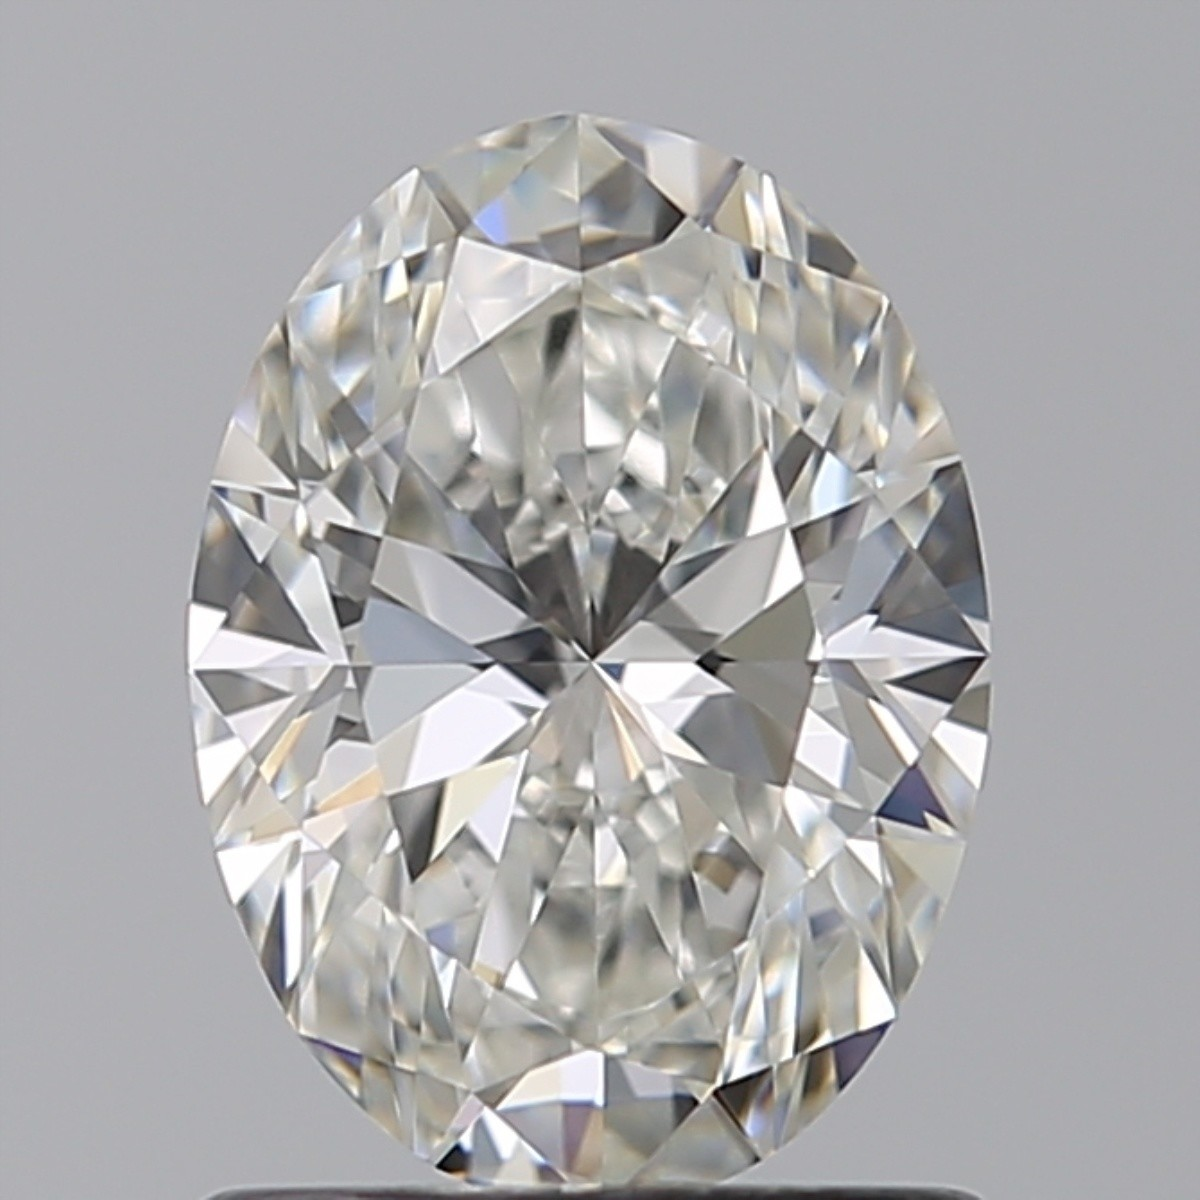 1.01 Carat Oval Diamond (G/VVS1)